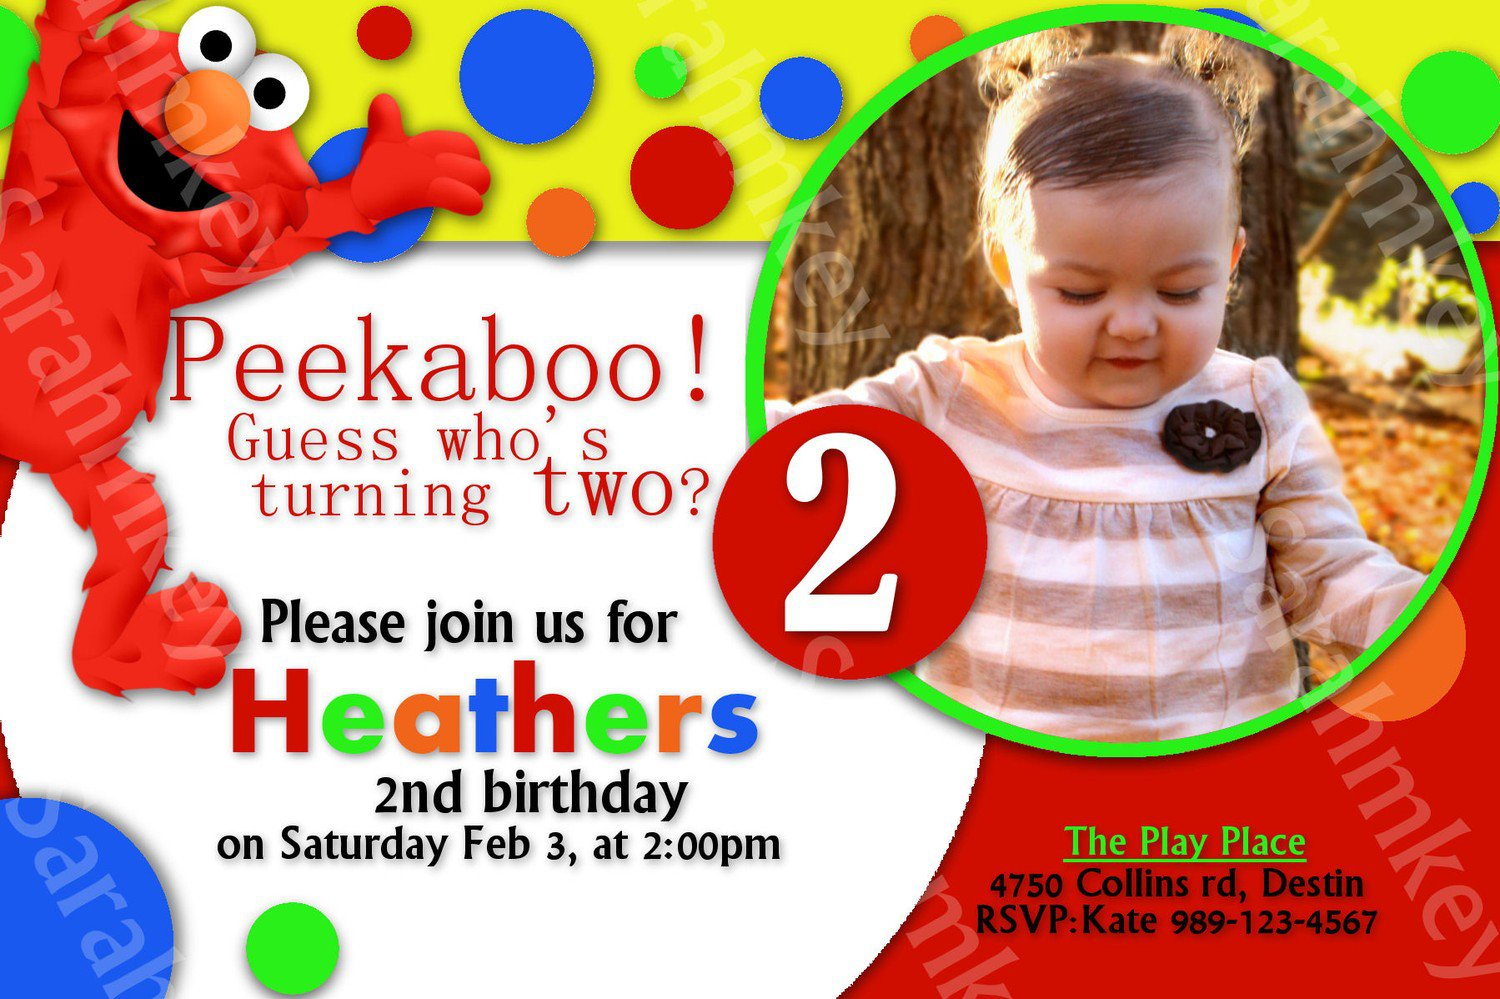 Printable elmo invitations for free for Elmo template for invitations